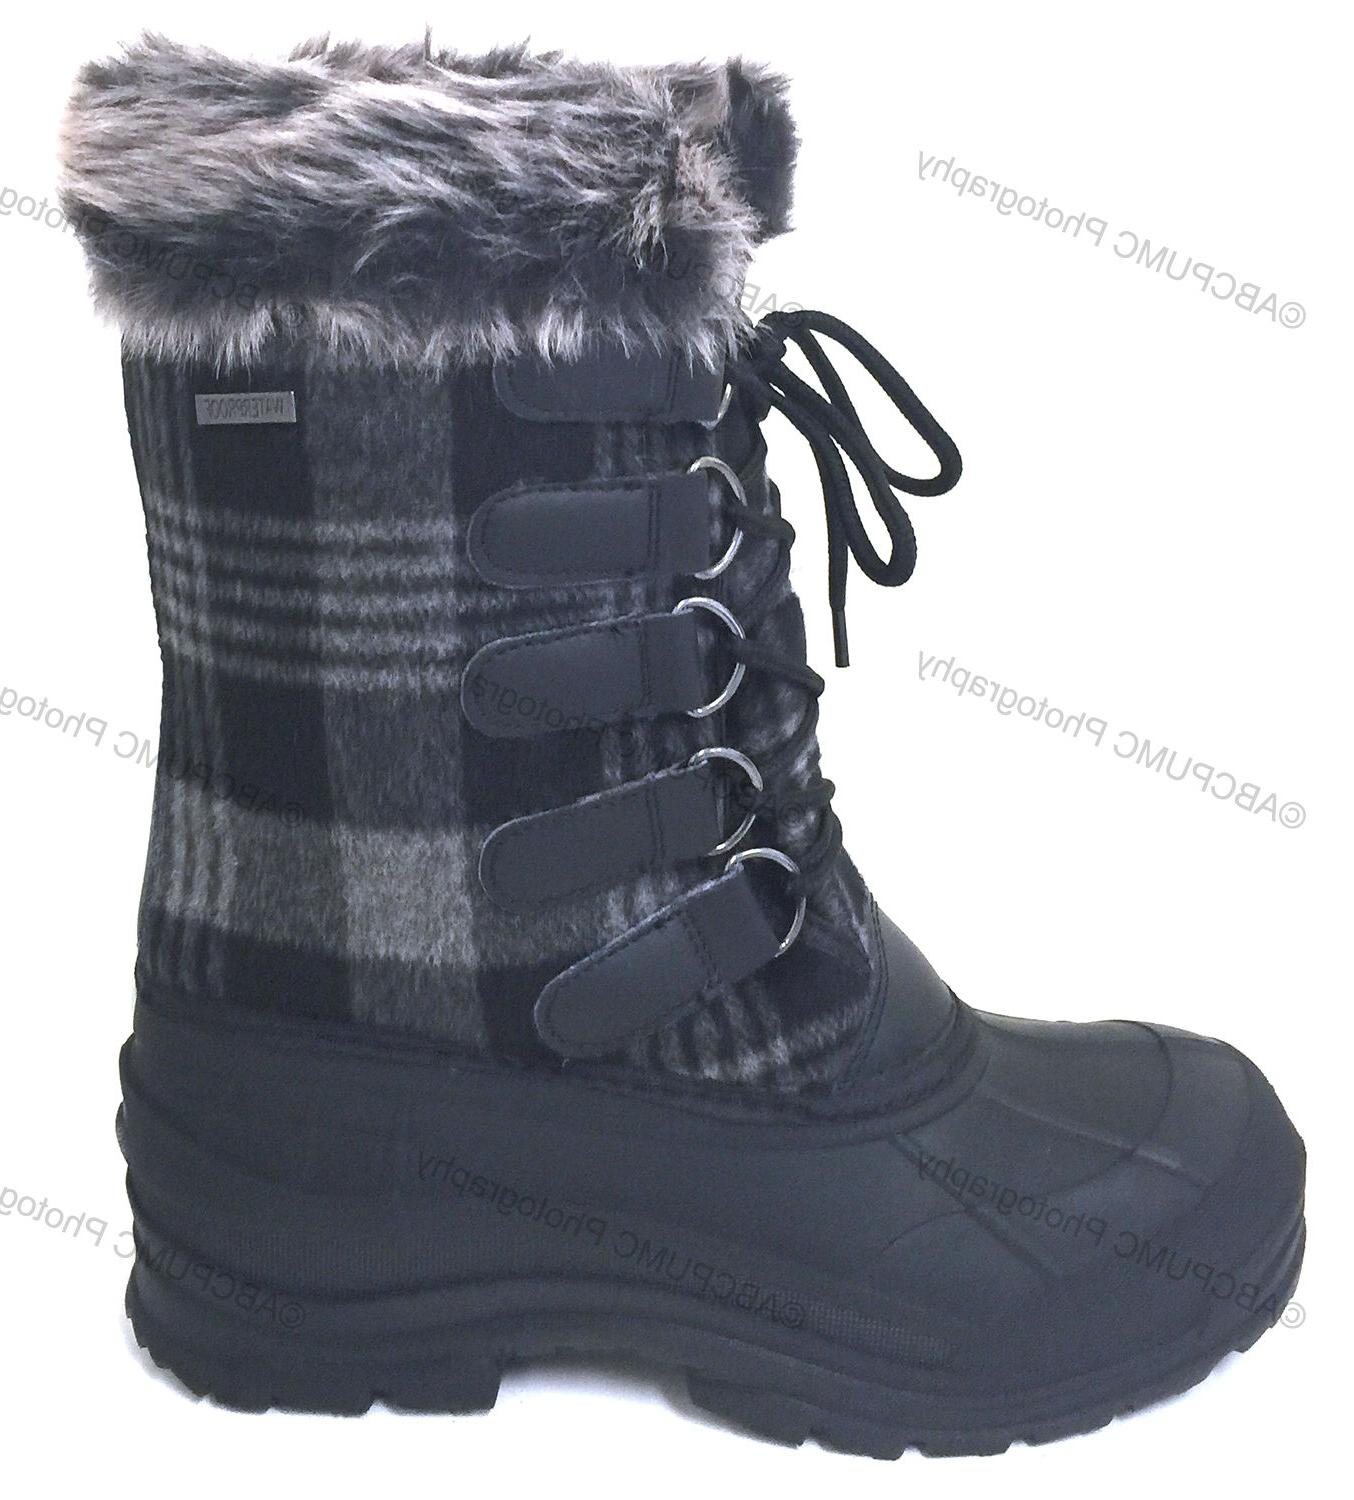 Womens Boots Plaid Hiking Warm Snow Shoe